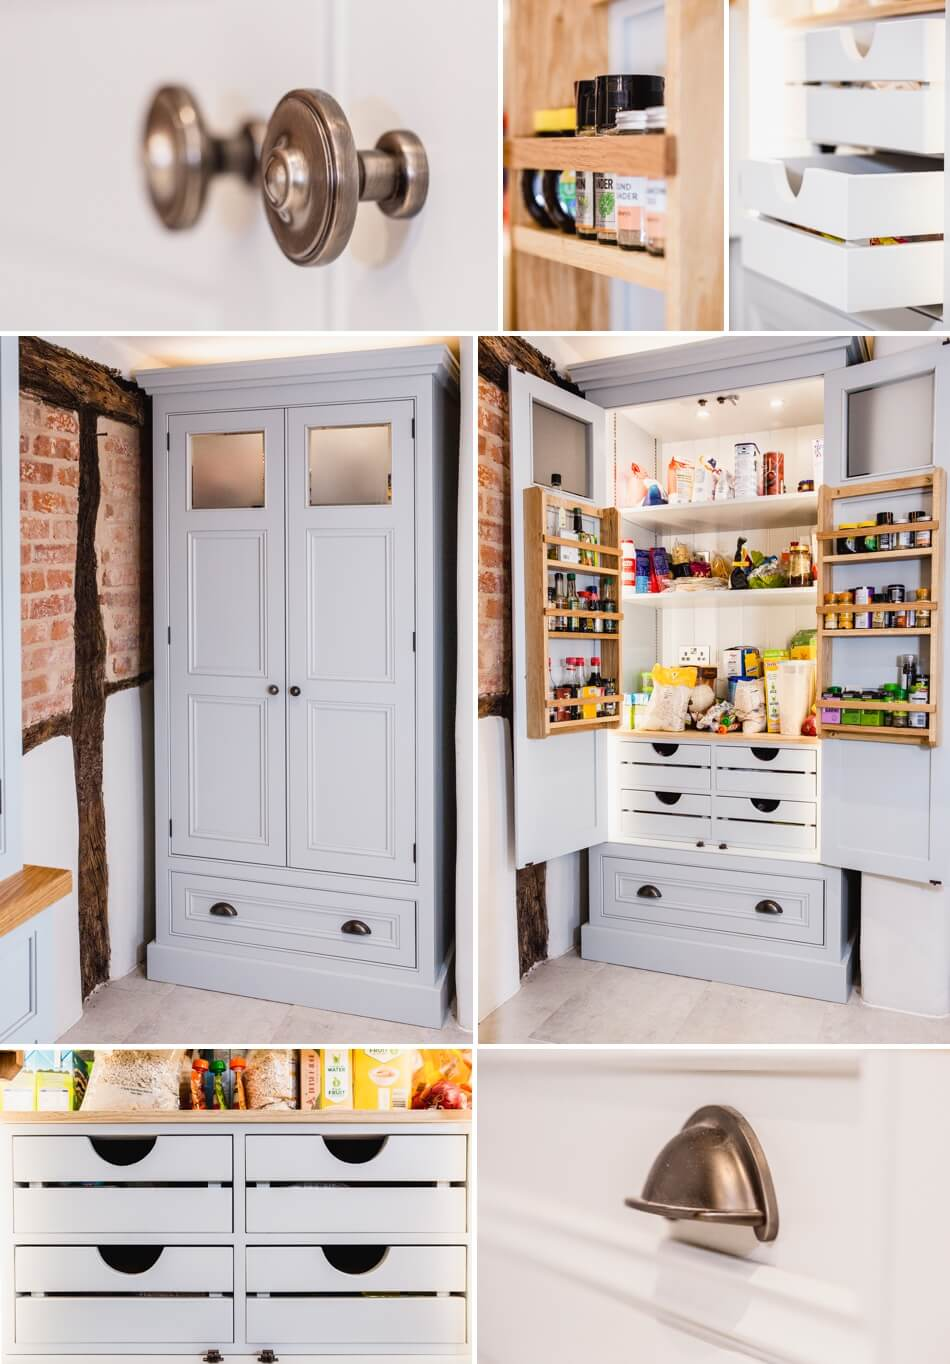 Bespoke kitchen larder,Elegant Bespoke Living, Kitchen, Leamington Spa, Joinery, Food larder, kitchen larder